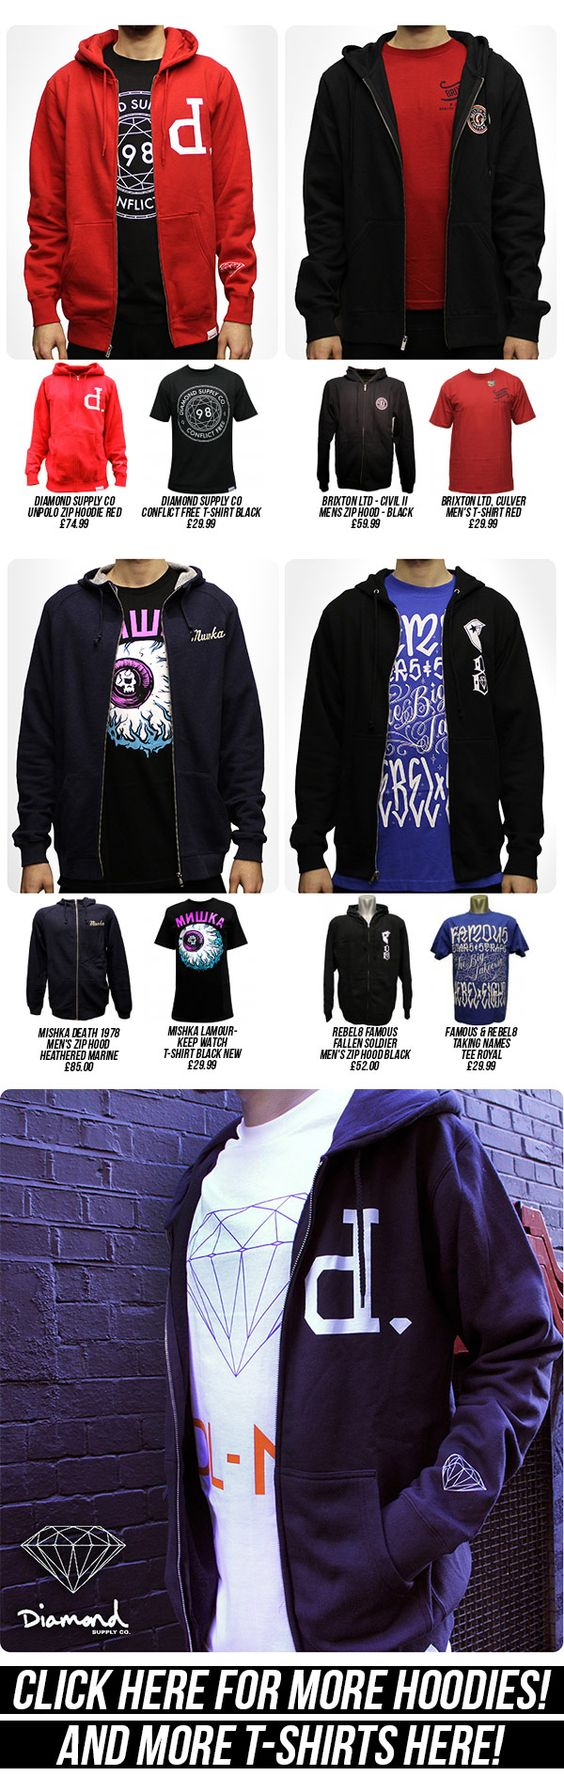 """a piece from """"Zip hoods and Tee Combo's"""" newsletter from last week. Find more here: http://www.everythinghiphop.com/Hoodies/"""